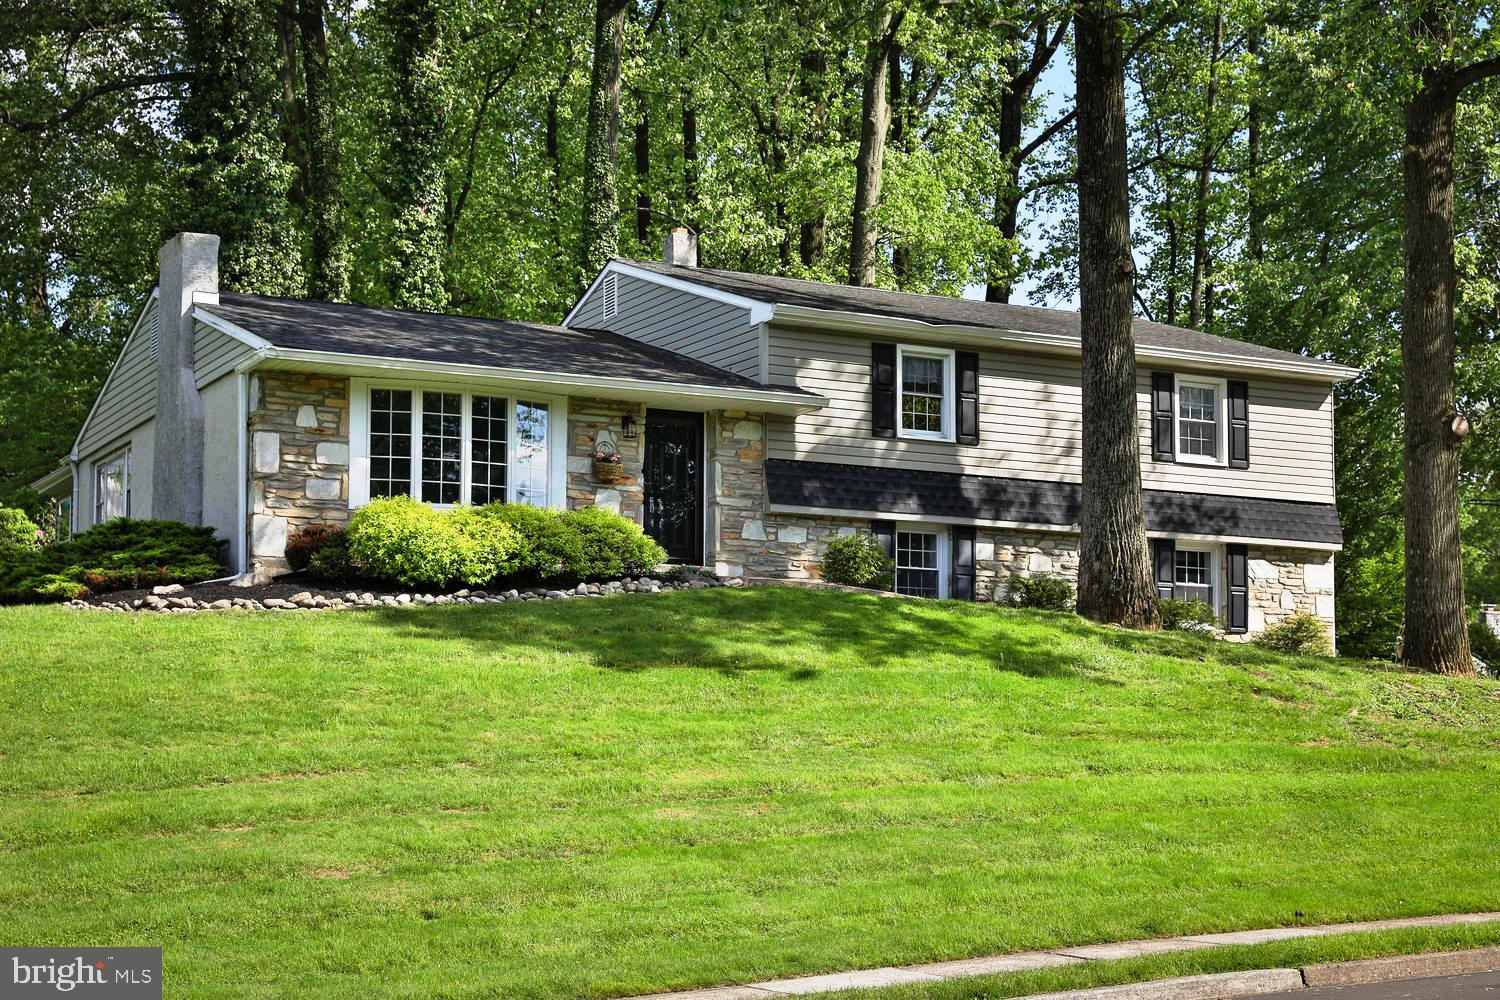 147 DEER RUN ROAD, WILLOW GROVE, PA 19090